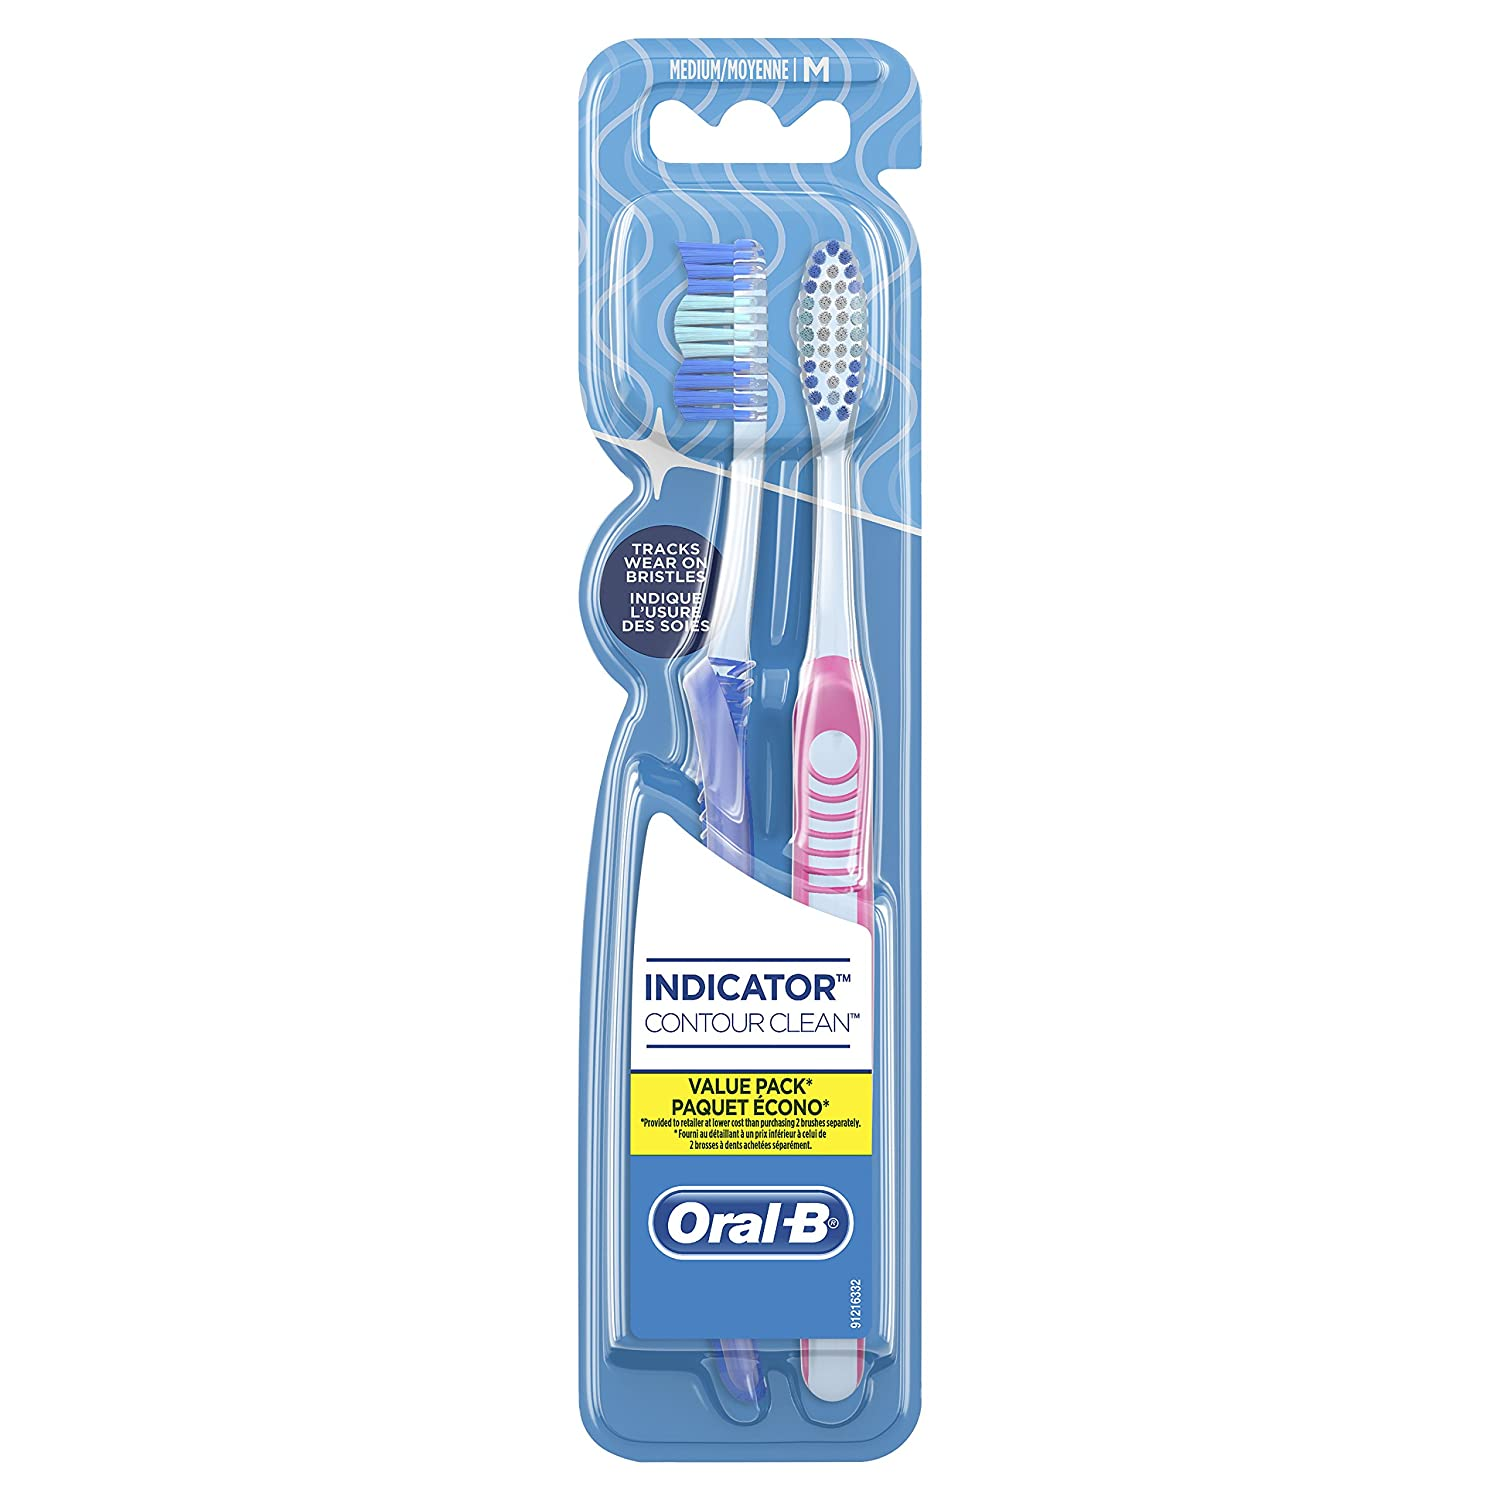 Oral-B Indicator Contour Clean Manual Toothbrush, 40 Med, 2 Count Procter and Gamble